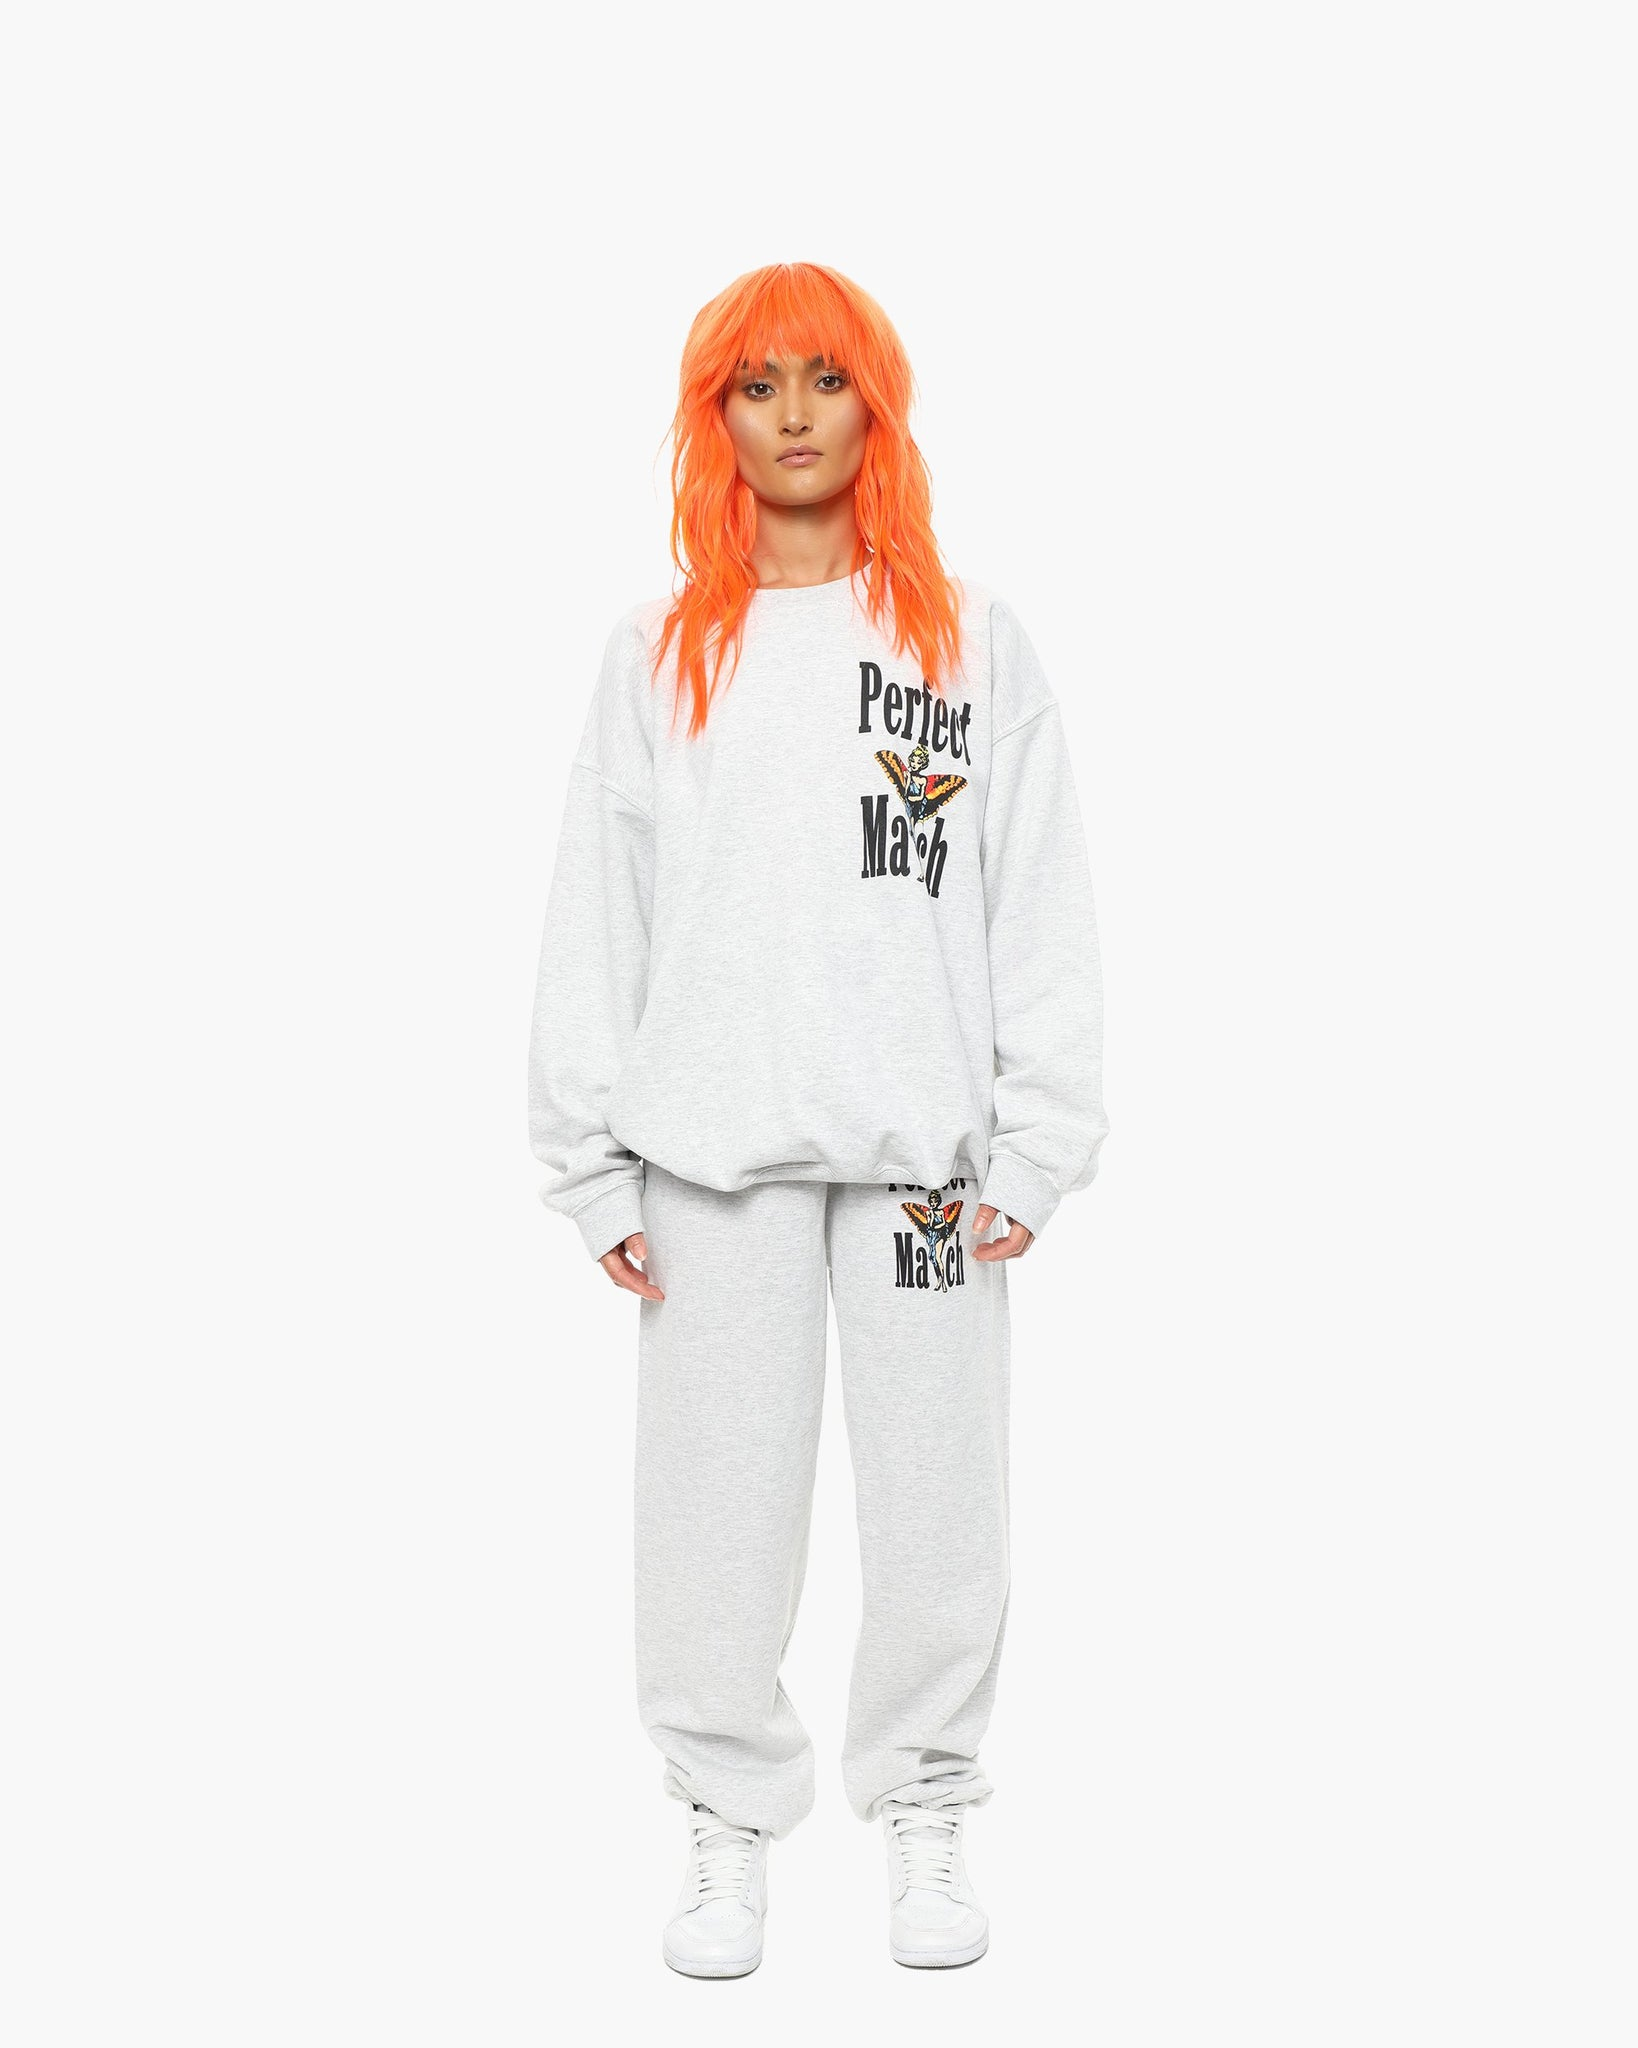 Perfect Match Remix Sweatpants